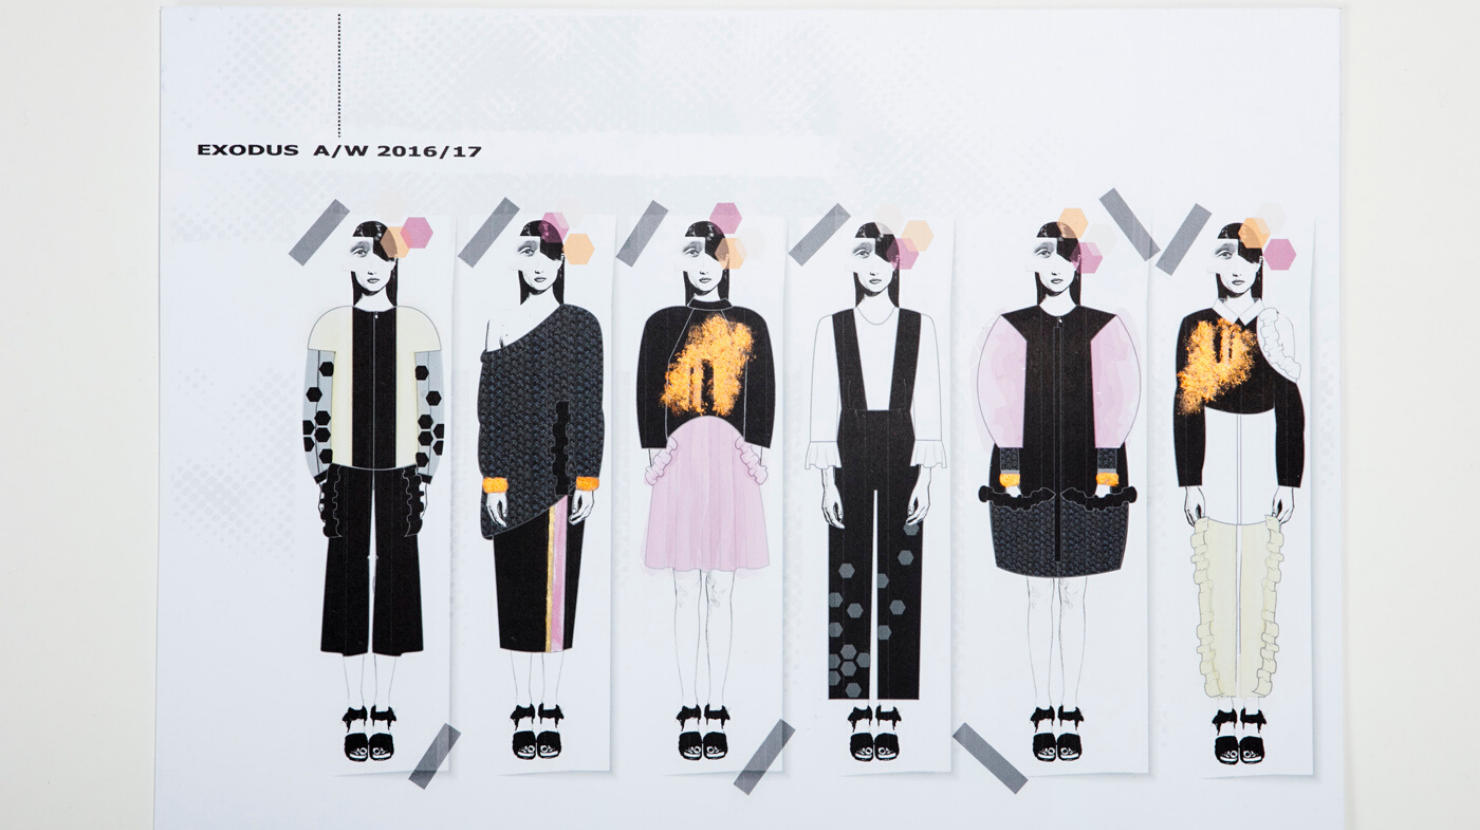 BA (Hons) in Fashion Design at Griffith College